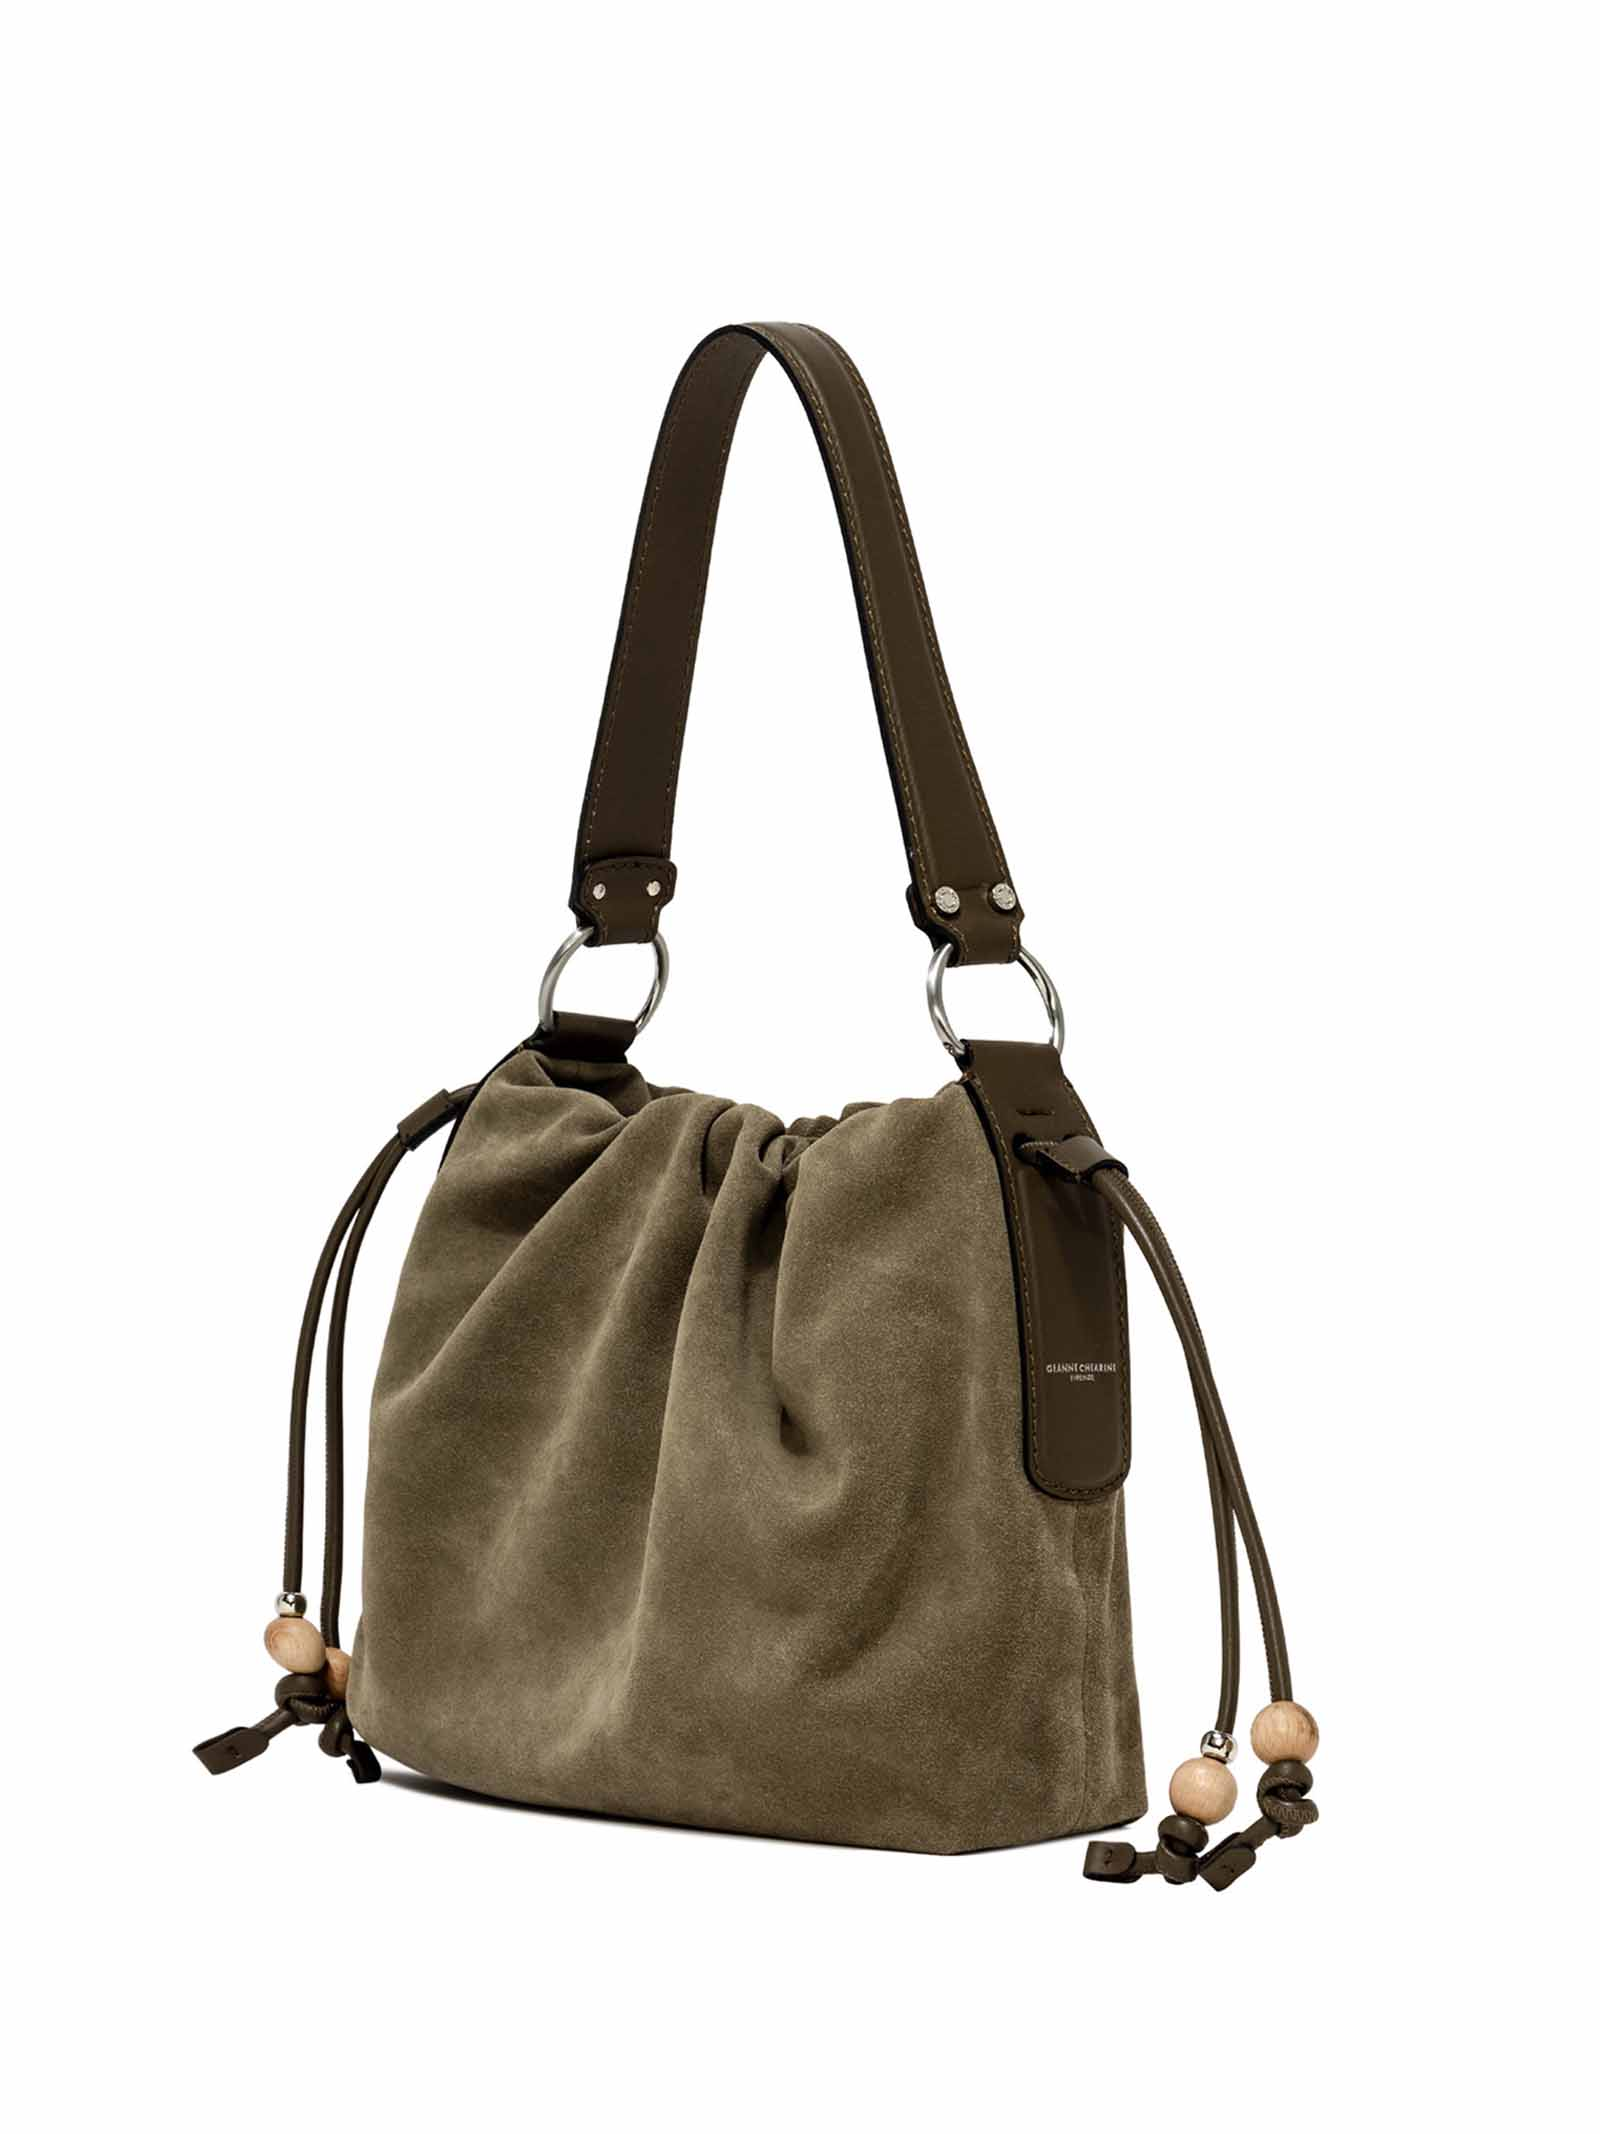 Women's Shoulder Bag Peonia In Taupe Suede with Cross-body Strap In Matching Color and Drawstring Closure Gianni Chiarini | Bags and backpacks | BS842012140